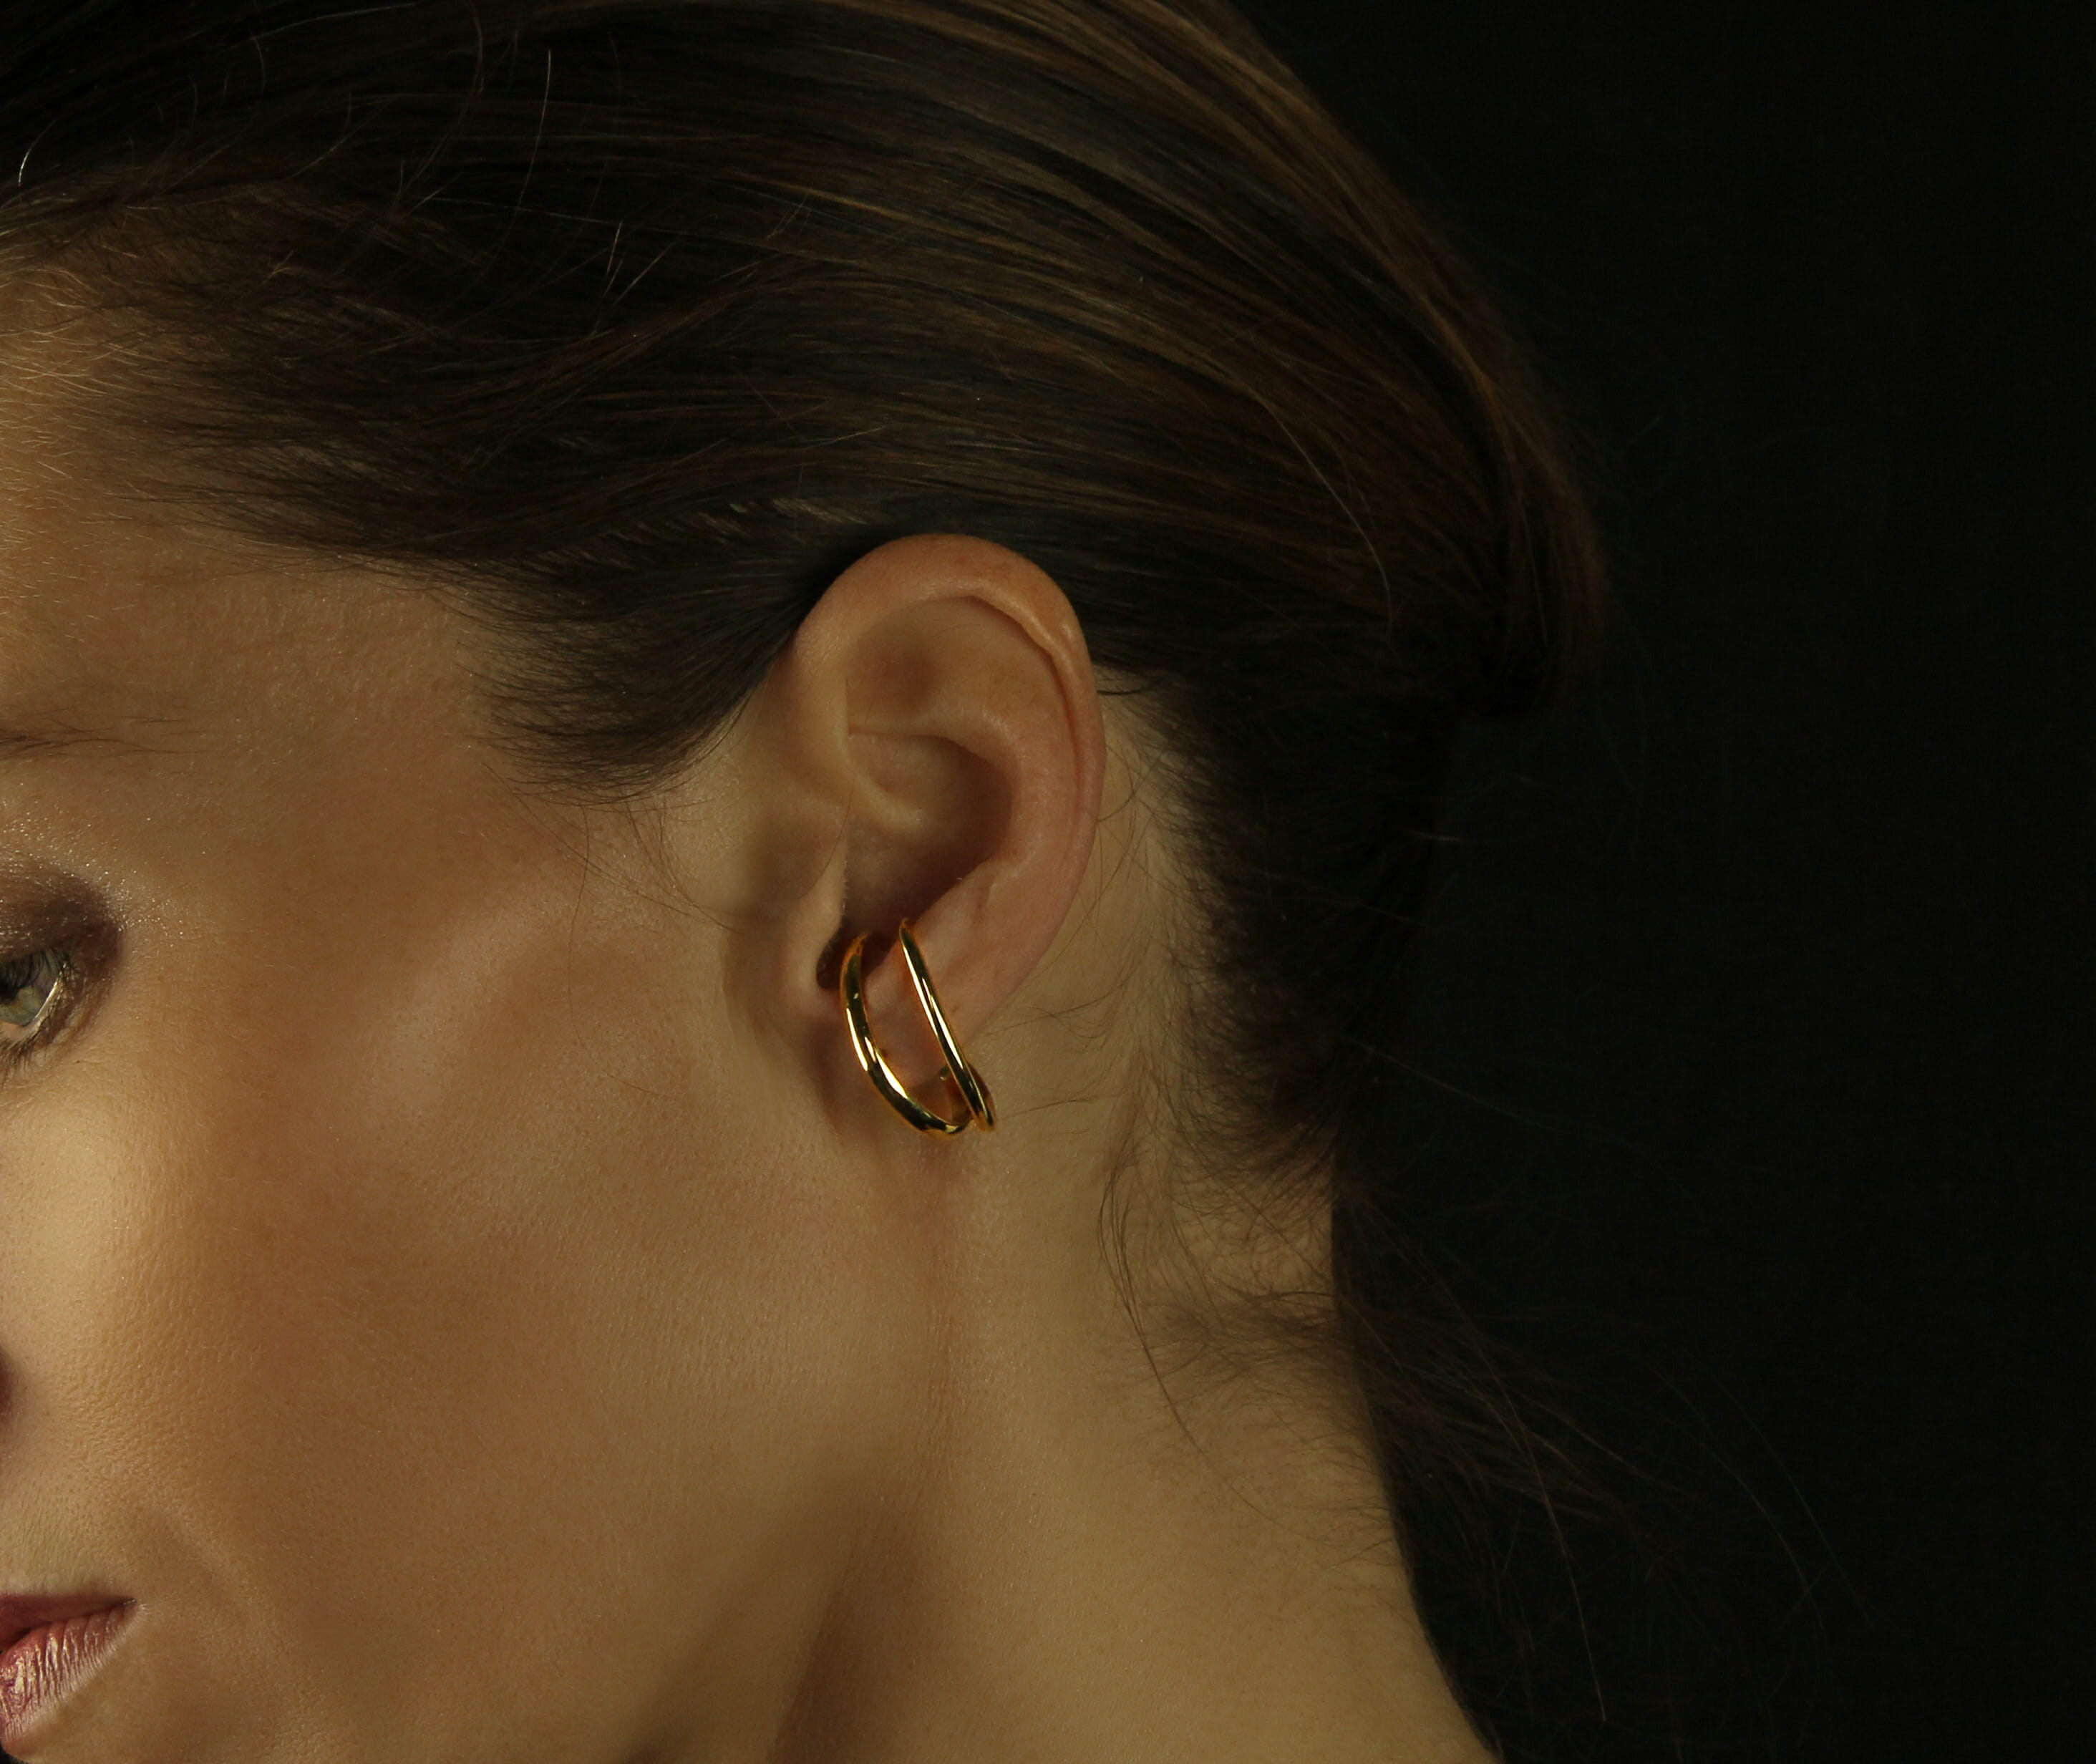 Piercing Like Gold Earring